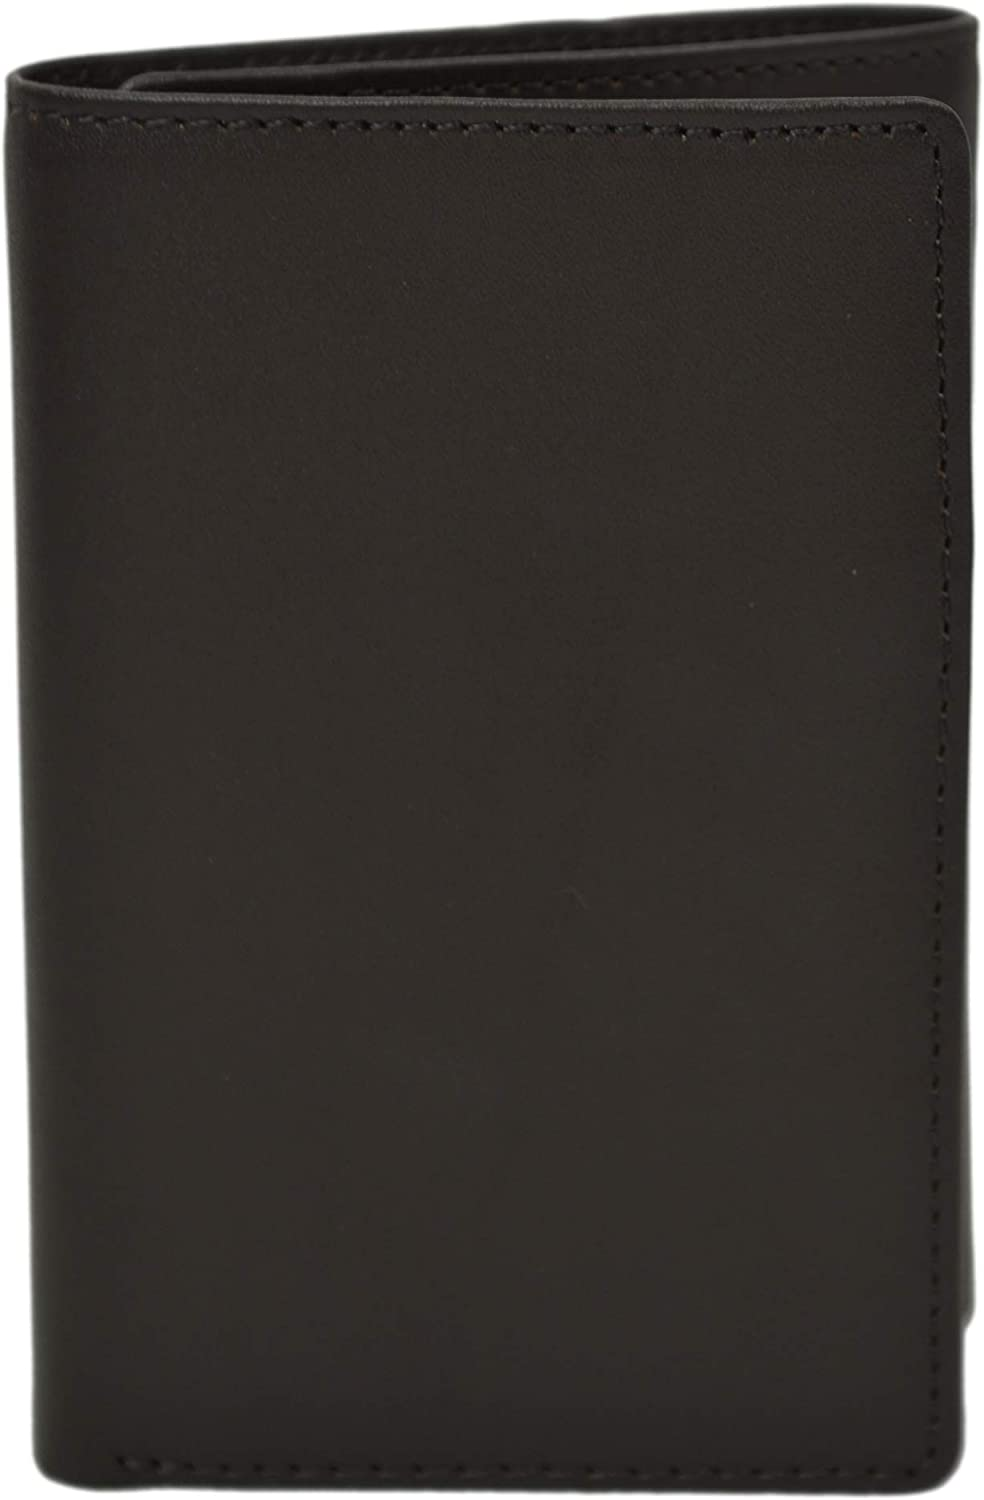 Brooks Brothers Men's 00011165 Genuine Leather Trifold Wallet with Giftbox (Brown)